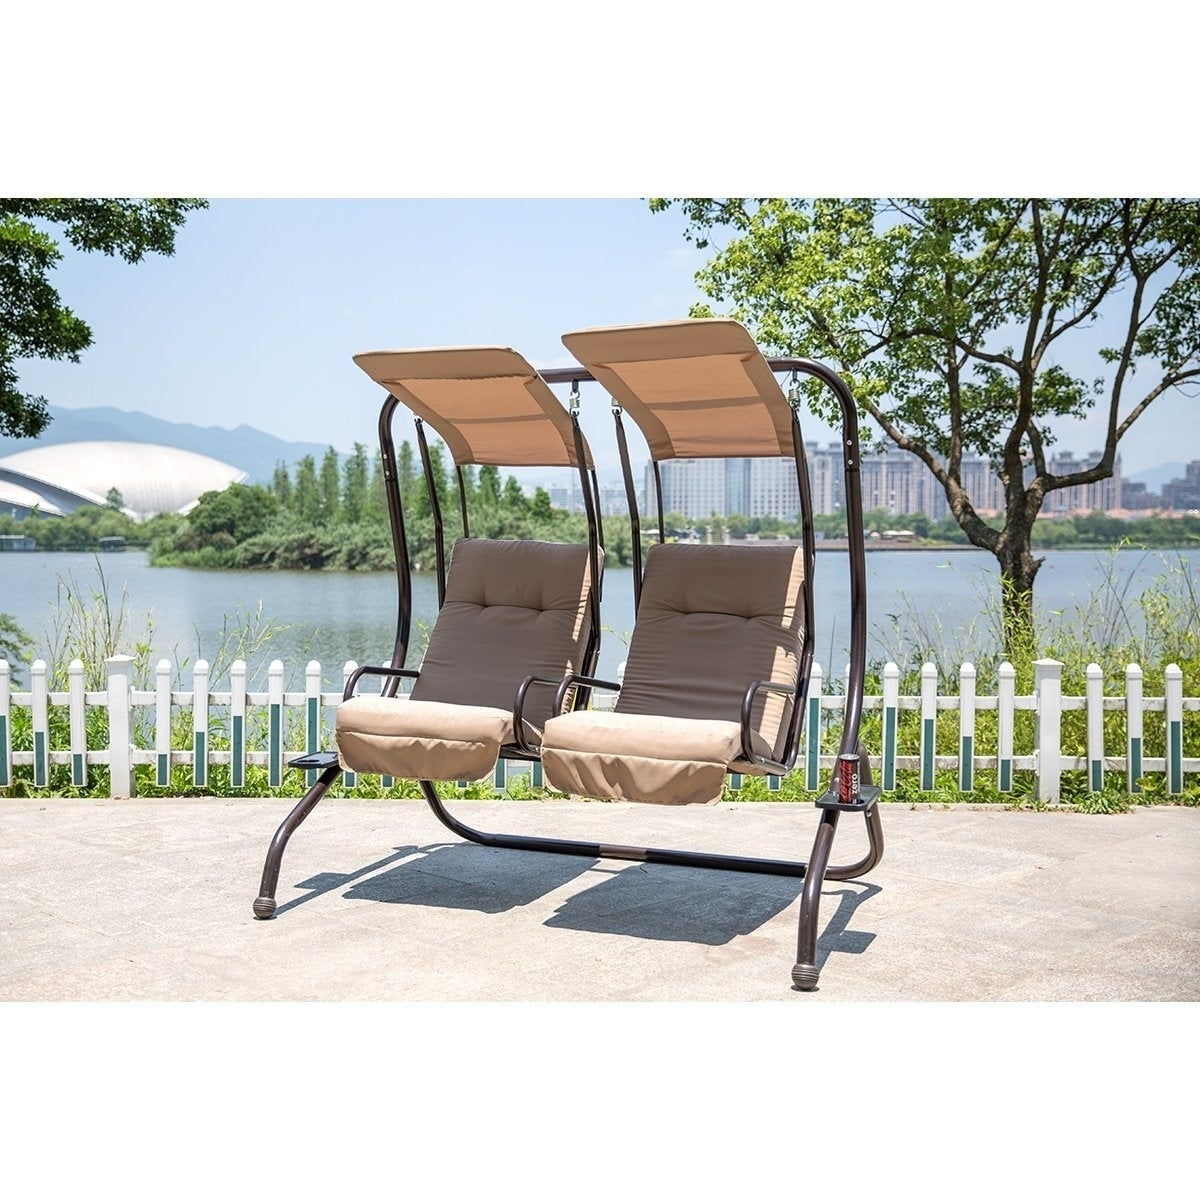 with marquette patrofi co veloclub seat gliding stand swing porch glider